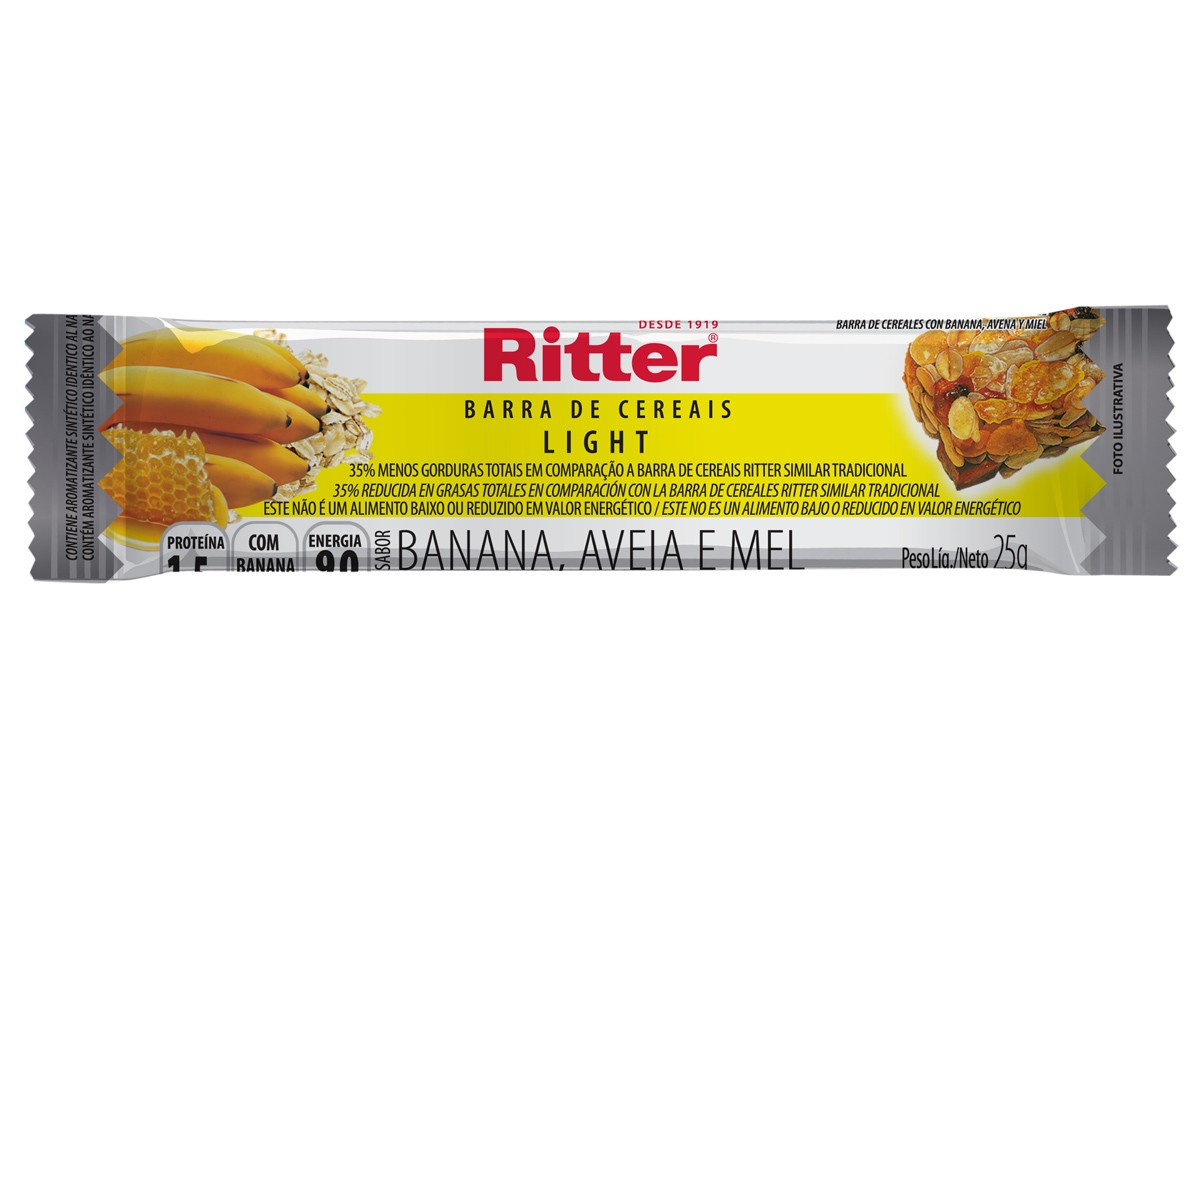 Barra de Cereal Light de Banana 25g - Ritter